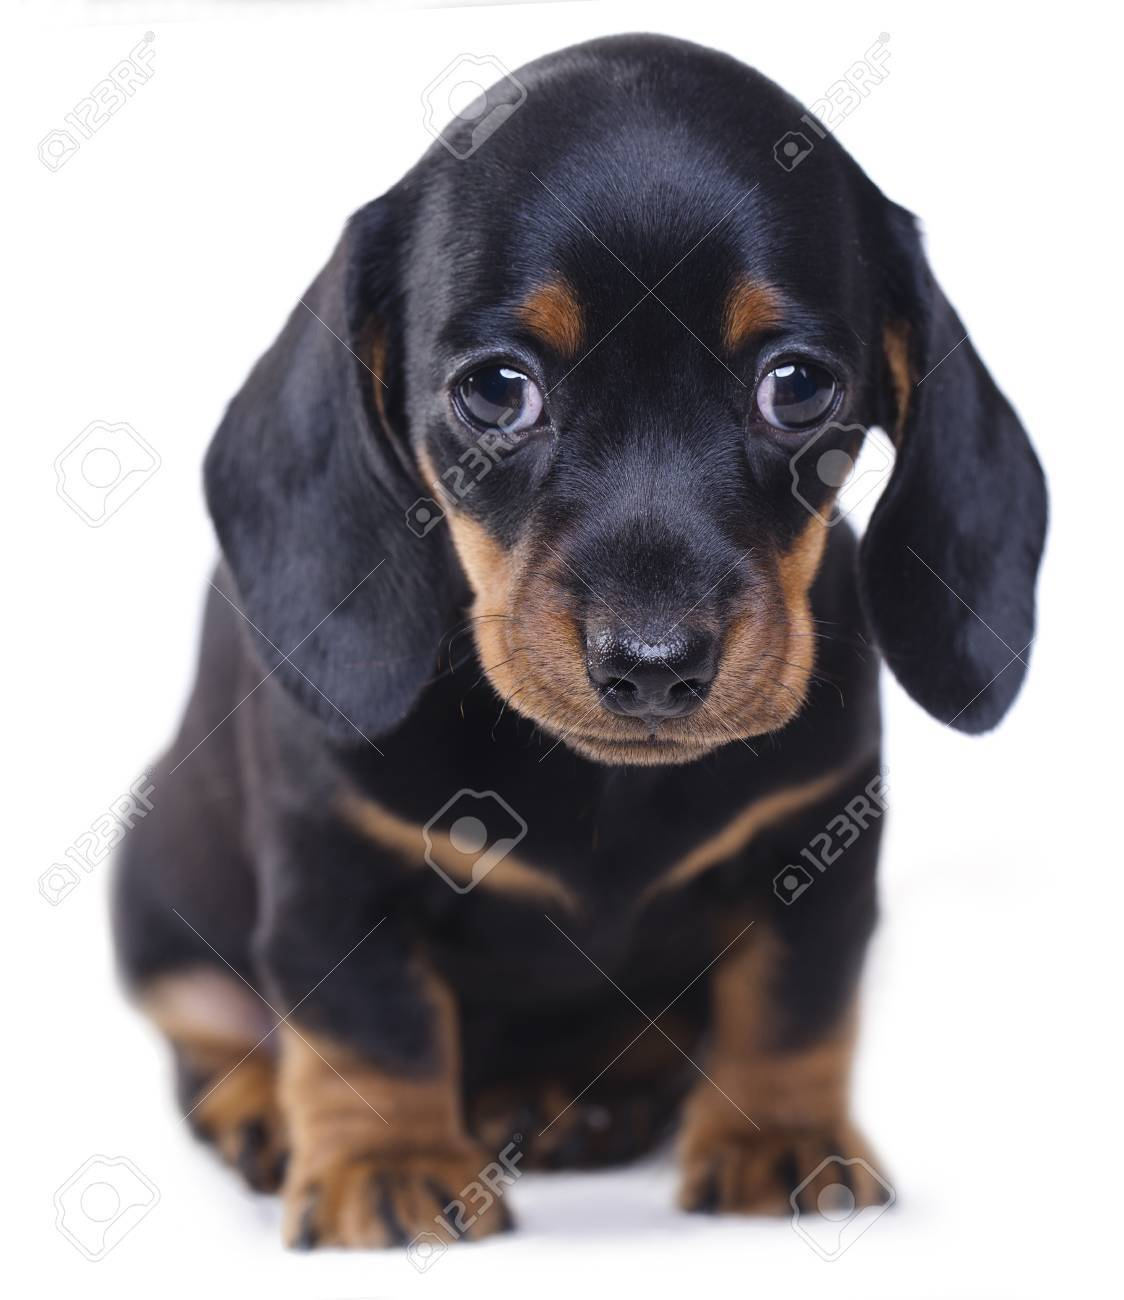 Sitting Dachshund Puppy Stock Photo Picture And Royalty Free Image